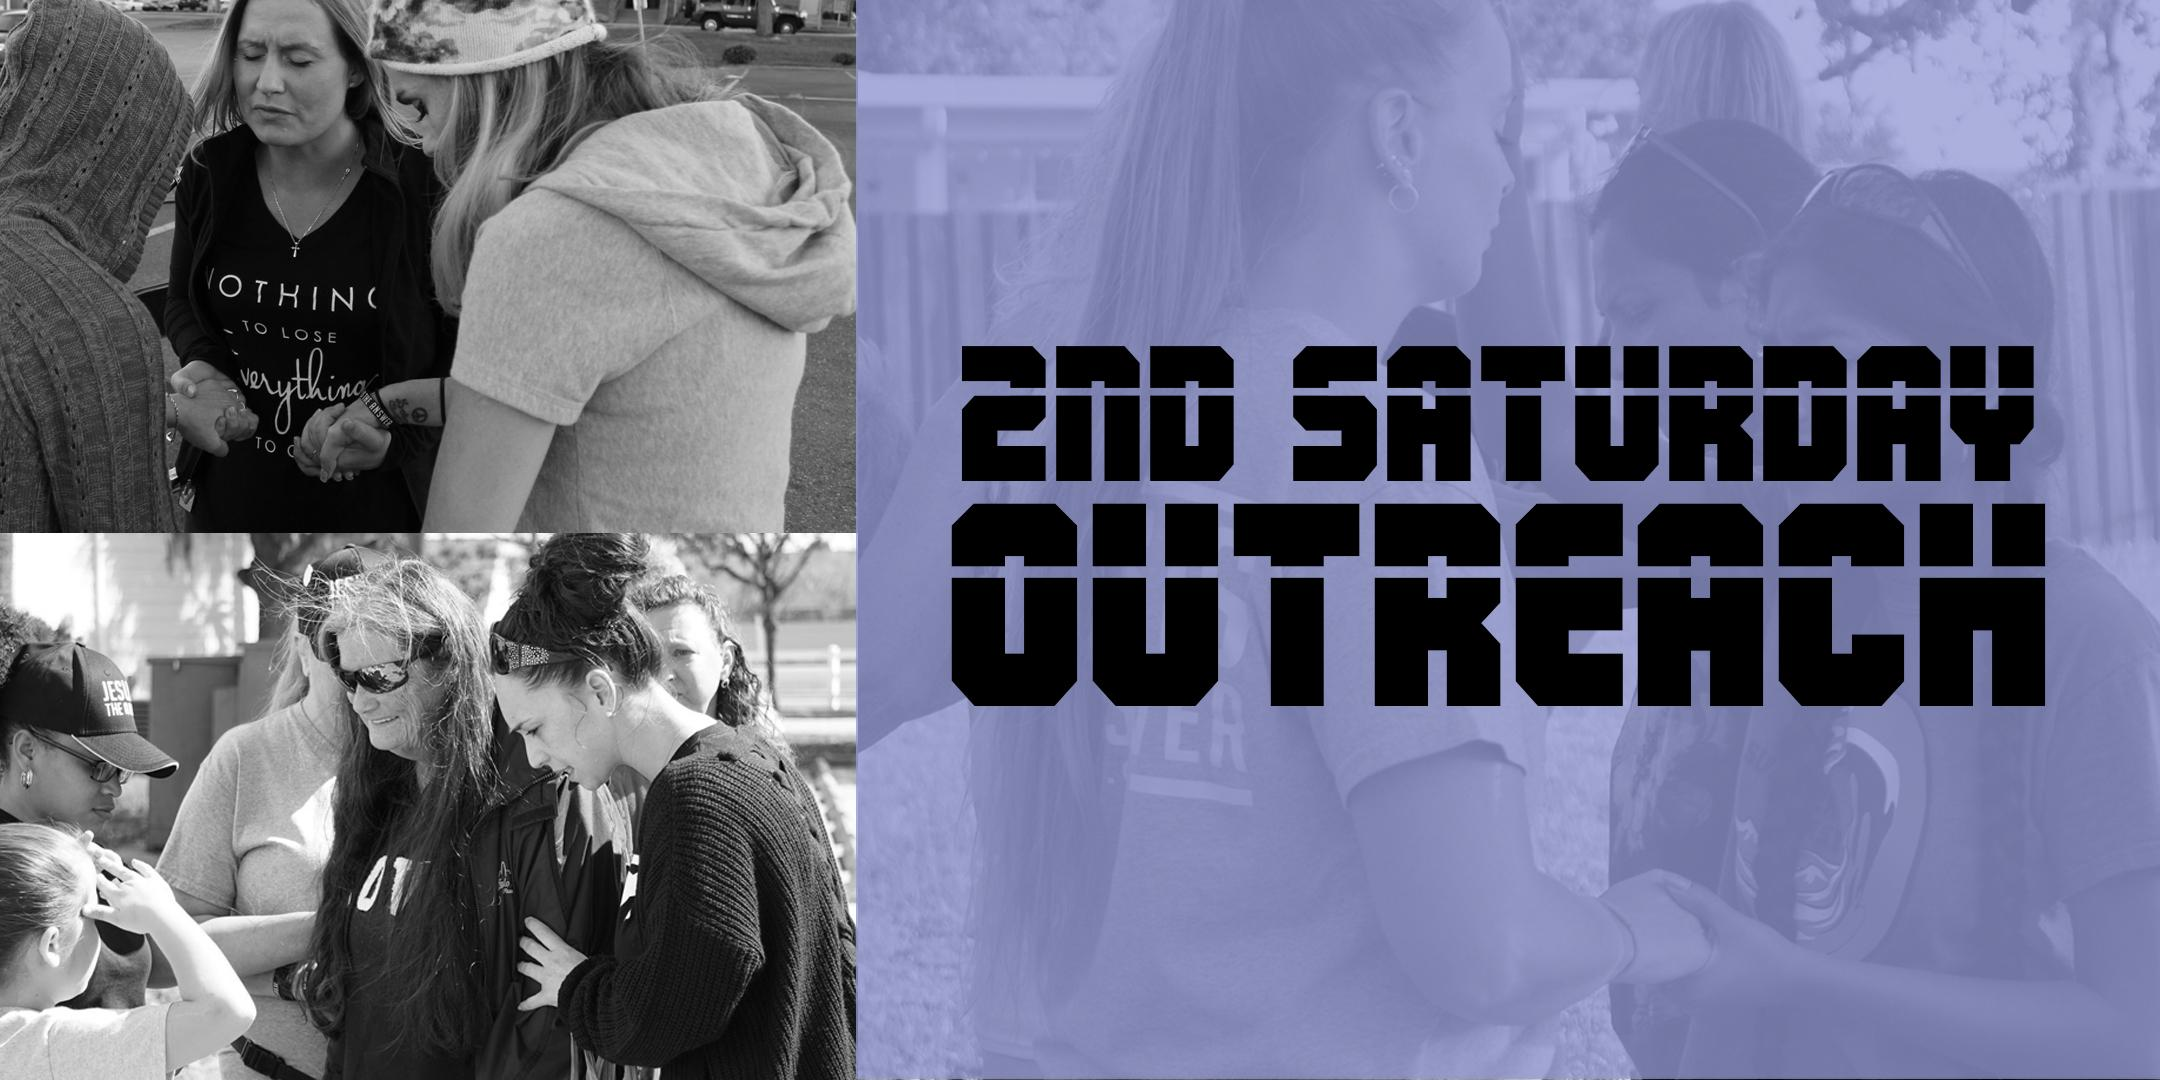 2nd Saturday Outreach